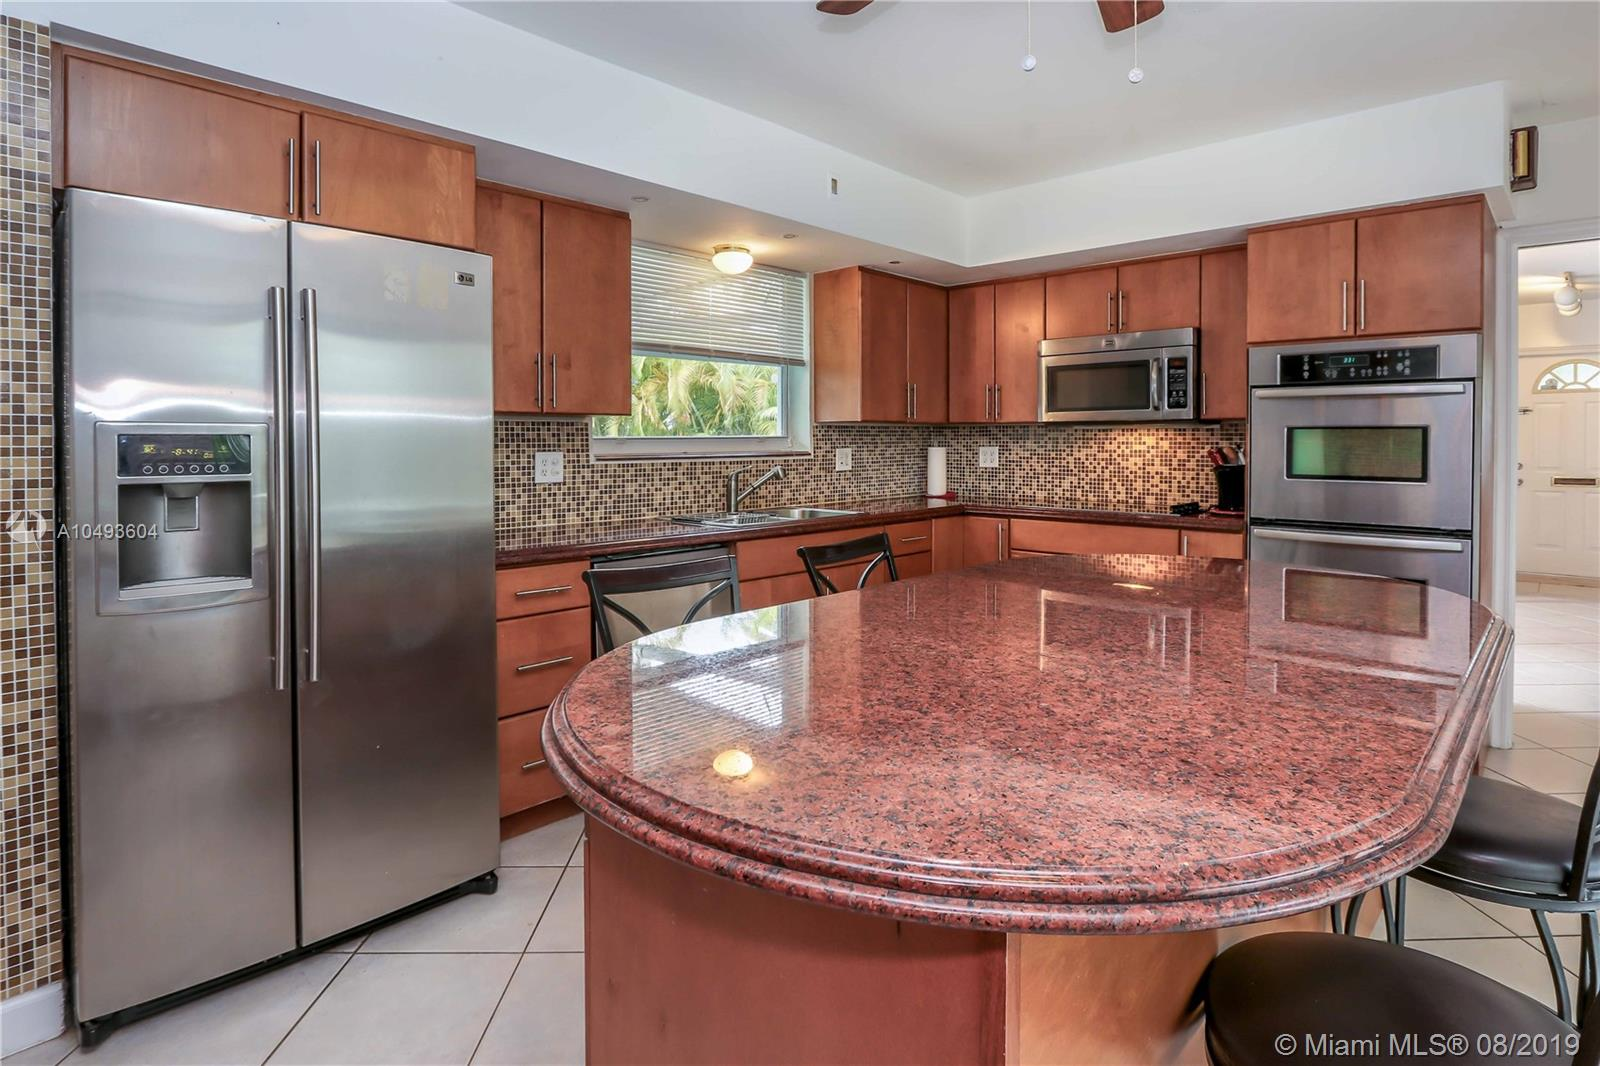 1124 N 13th Ave  For Sale A10493604, FL